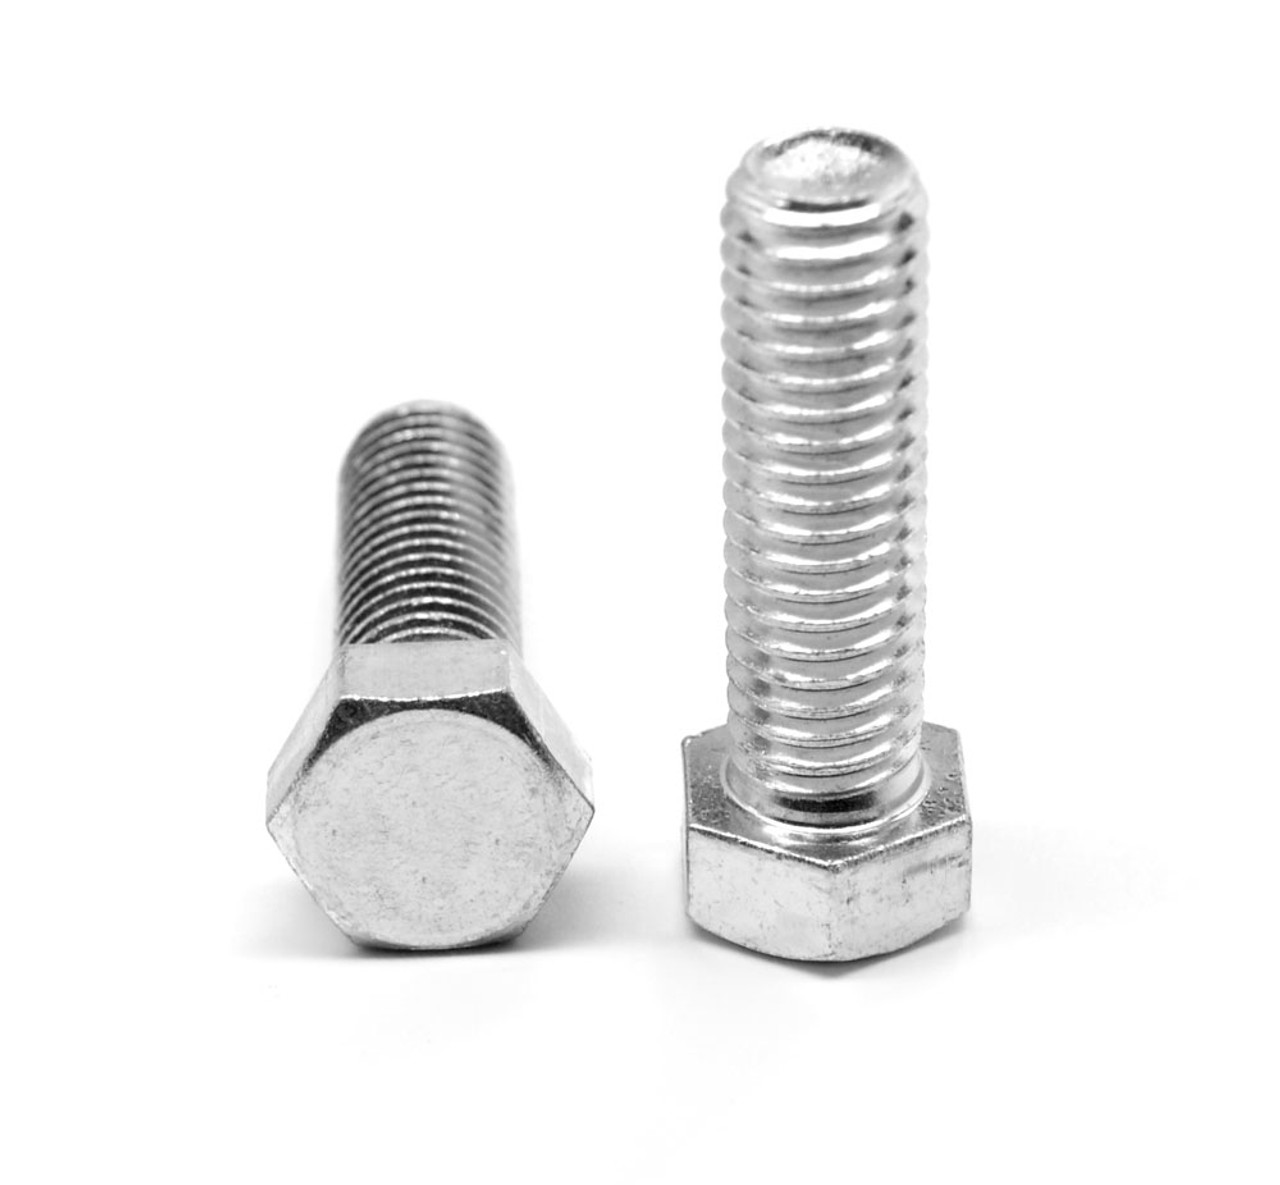 M24 x 3.00 x 50 MM (FT) Coarse Thread DIN 933 Hex Cap Screw (Bolt) Stainless Steel 18-8